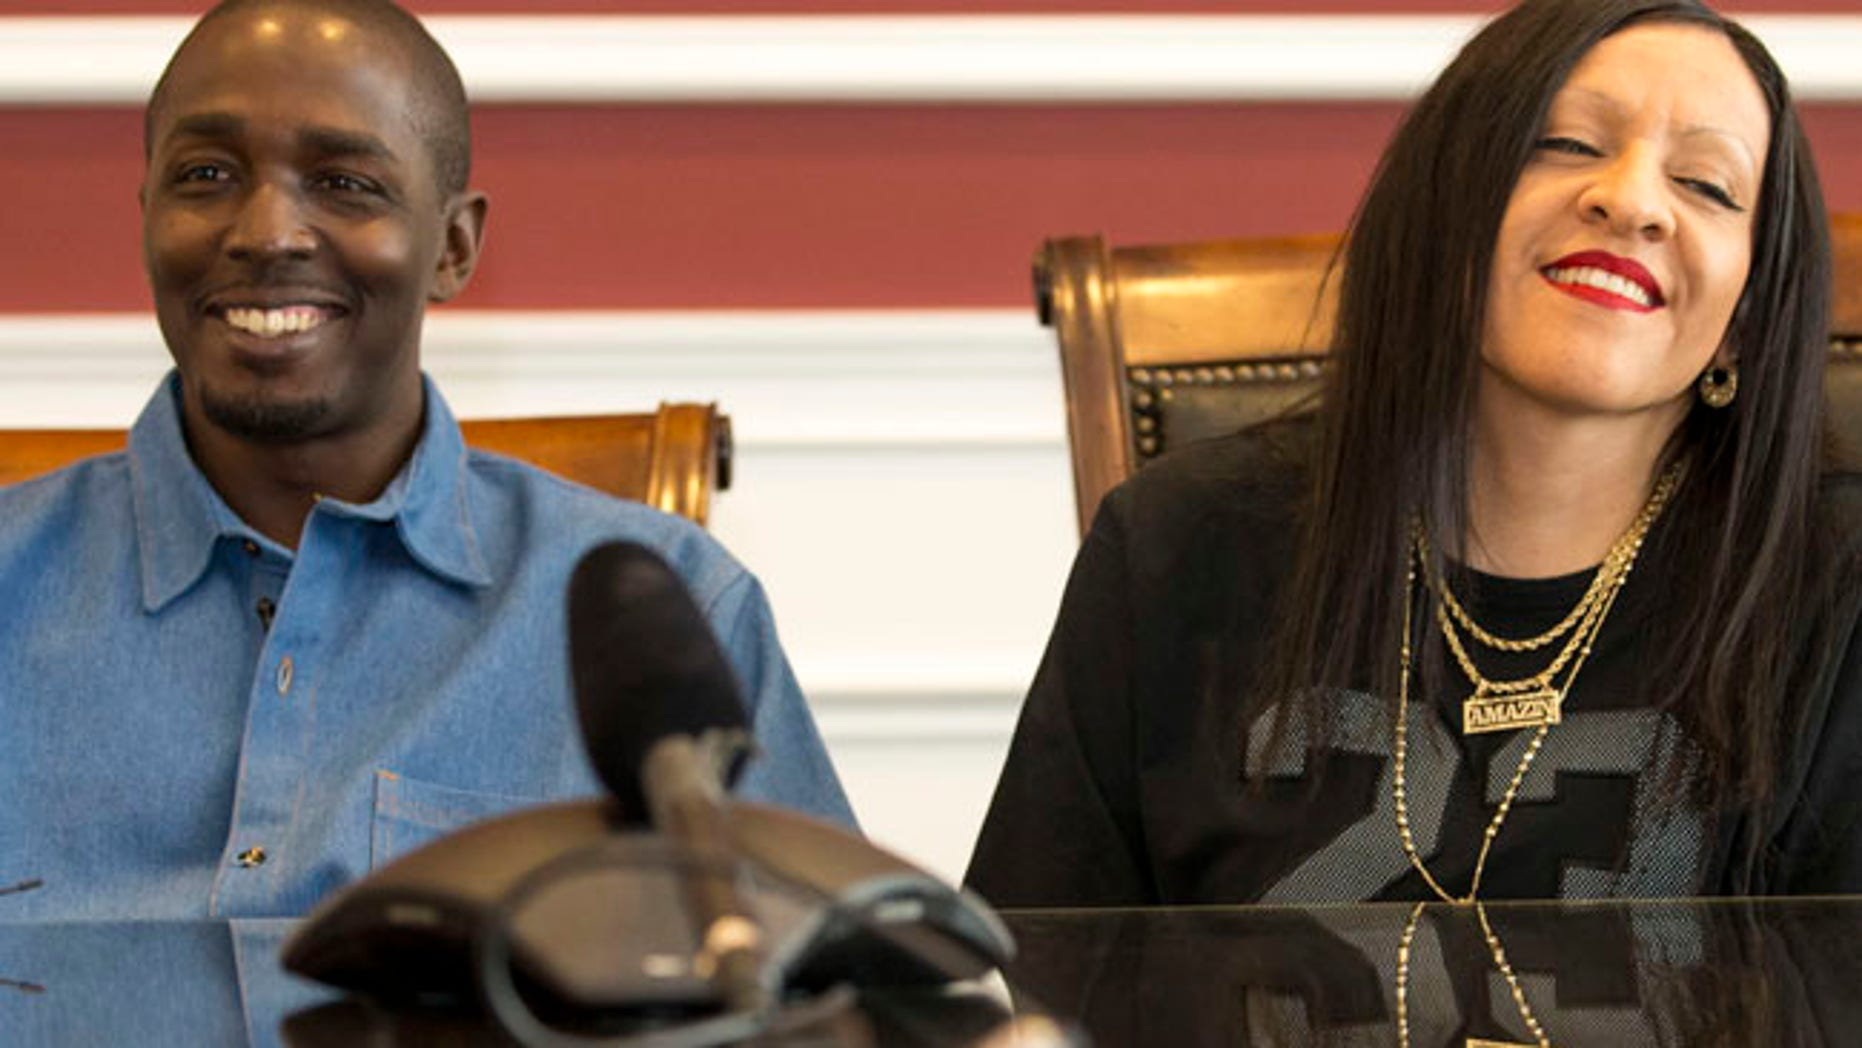 "DeMarlo Berry sits with his wife Odilia Berry during a news conference at the law office of Eglet Prince in Las Vegas on Friday, June 30, 2017. DeMarlo Berry was freed from prison after 23 years behind bars for a crime he didn't commit said Friday he felt ""a little overwhelmed"" by changes in the city where he was arrested when he was 19.  (Richard Brian/Las Vegas Review-Journal via AP)"